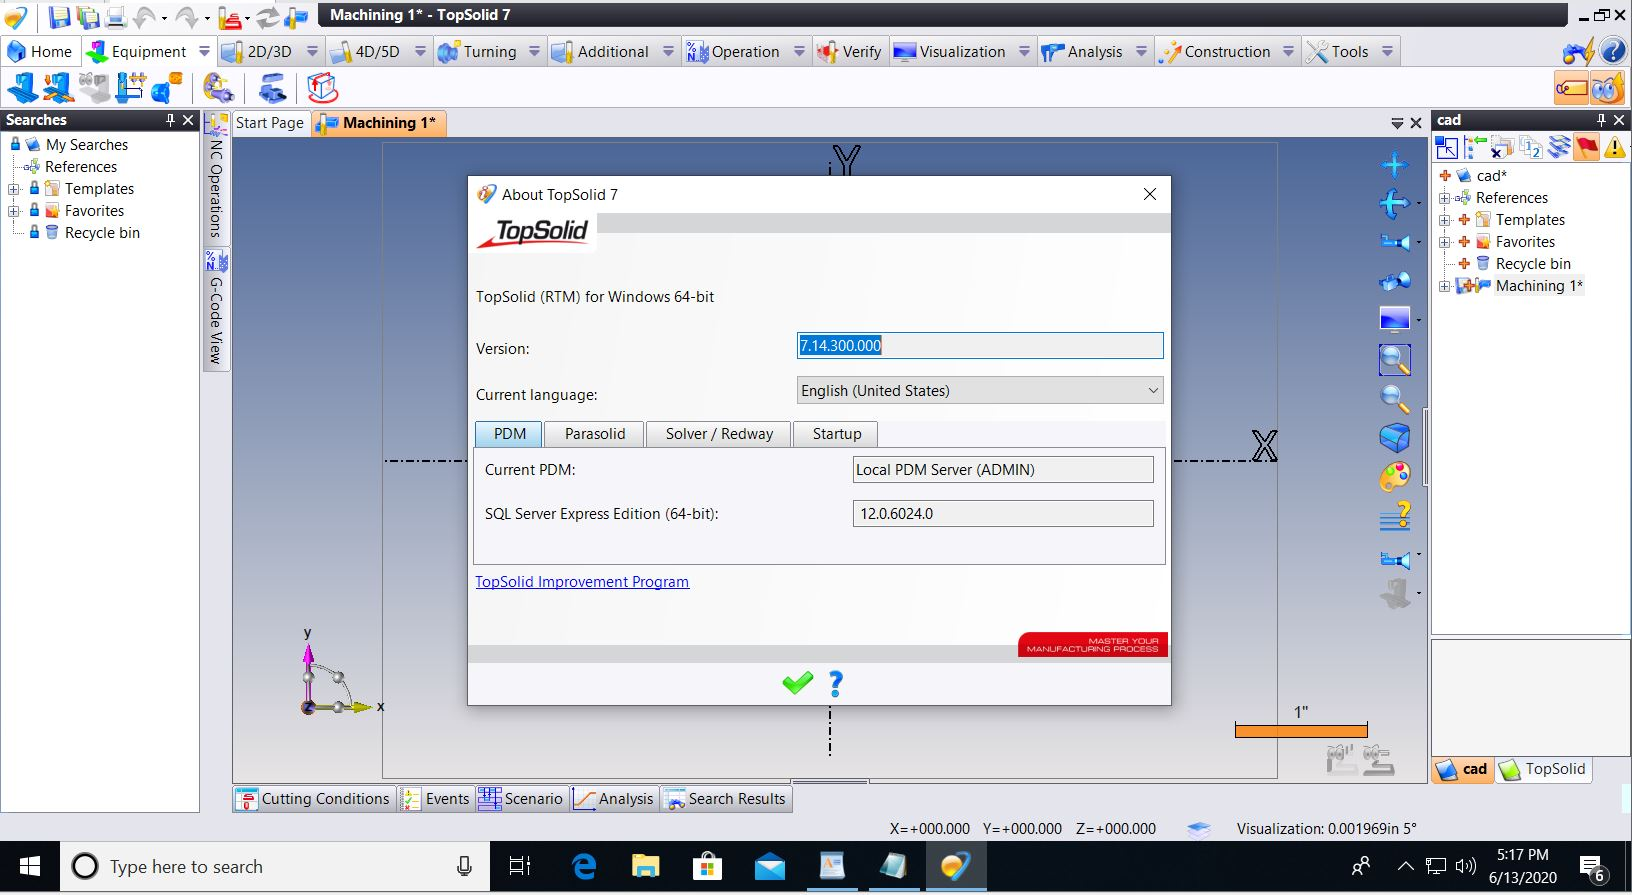 Working with TOPSOLID v7.14 full license